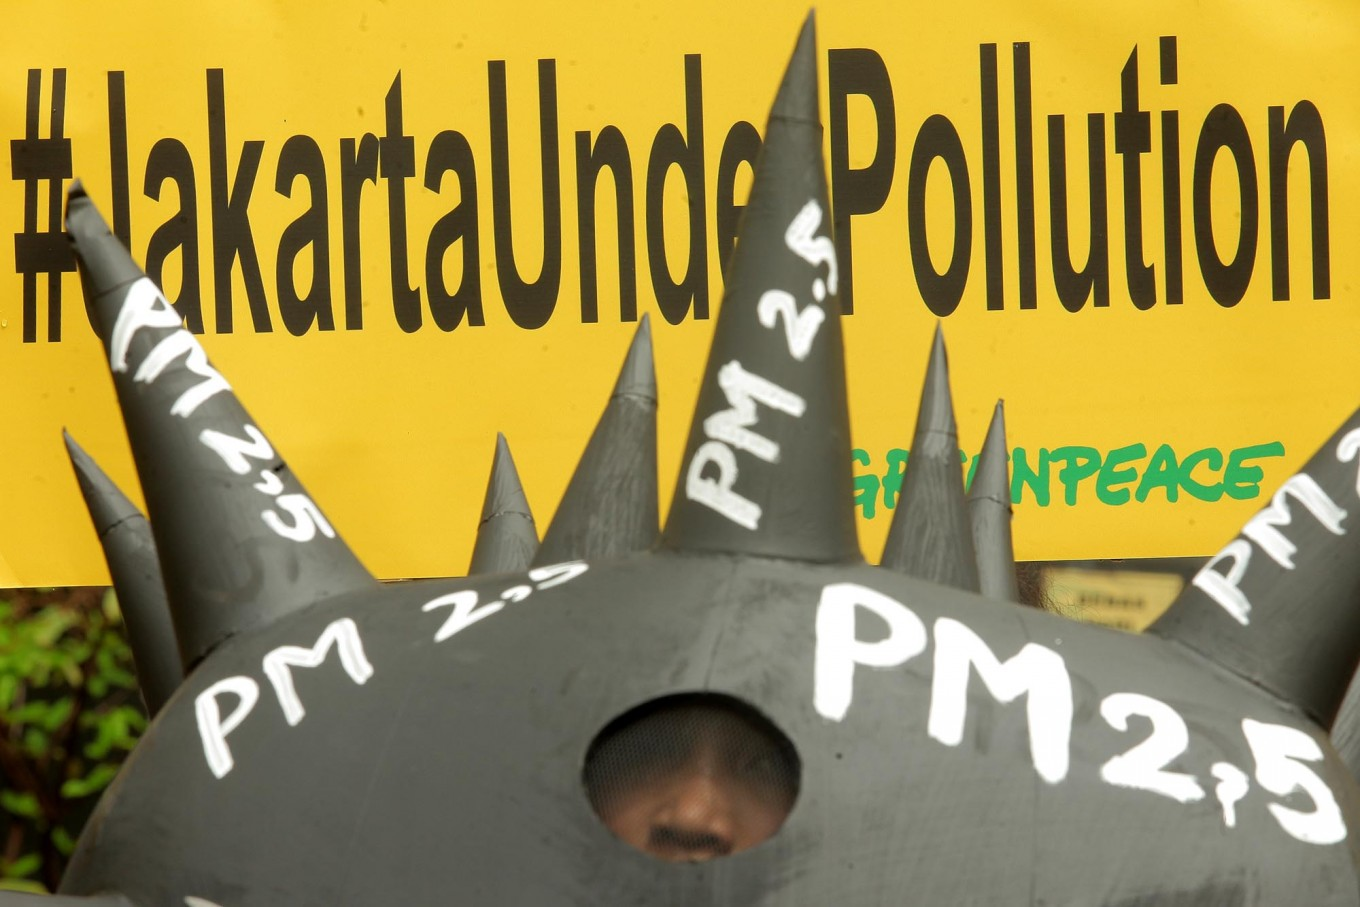 Power plants around Jakarta could cause premature deaths: Greenpeace